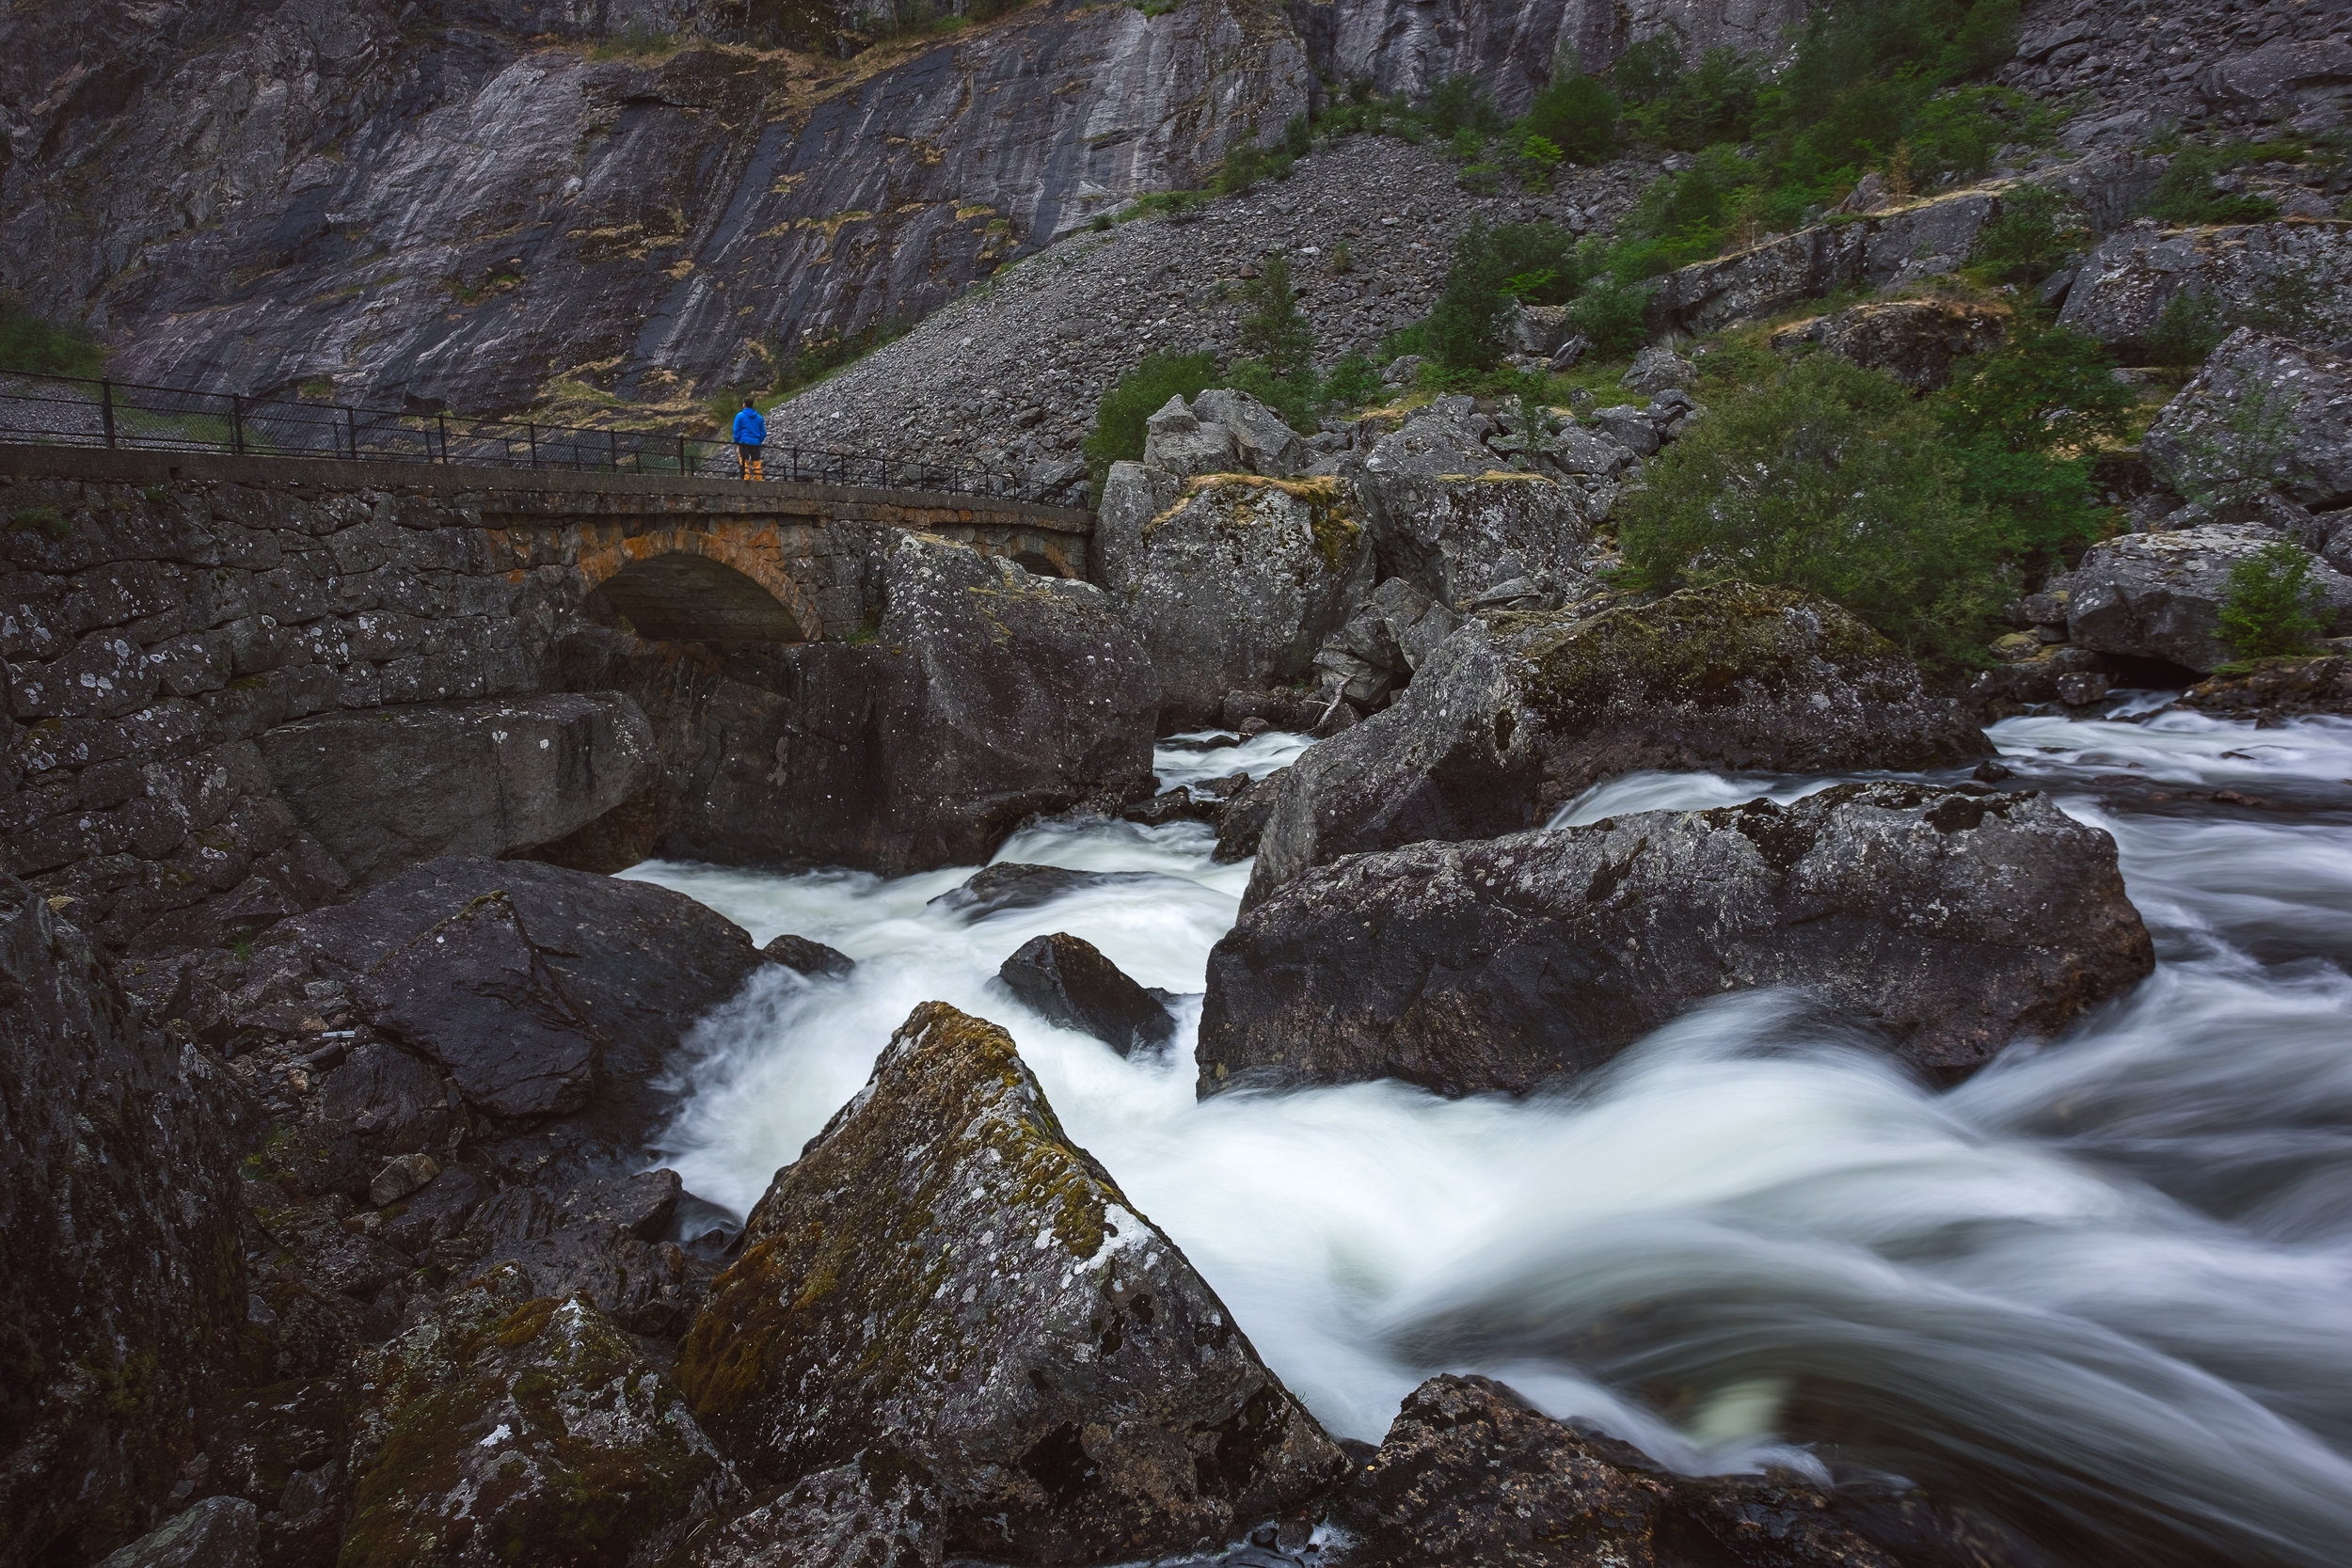 Further down from Vöringsfossen on an old stretch of the road